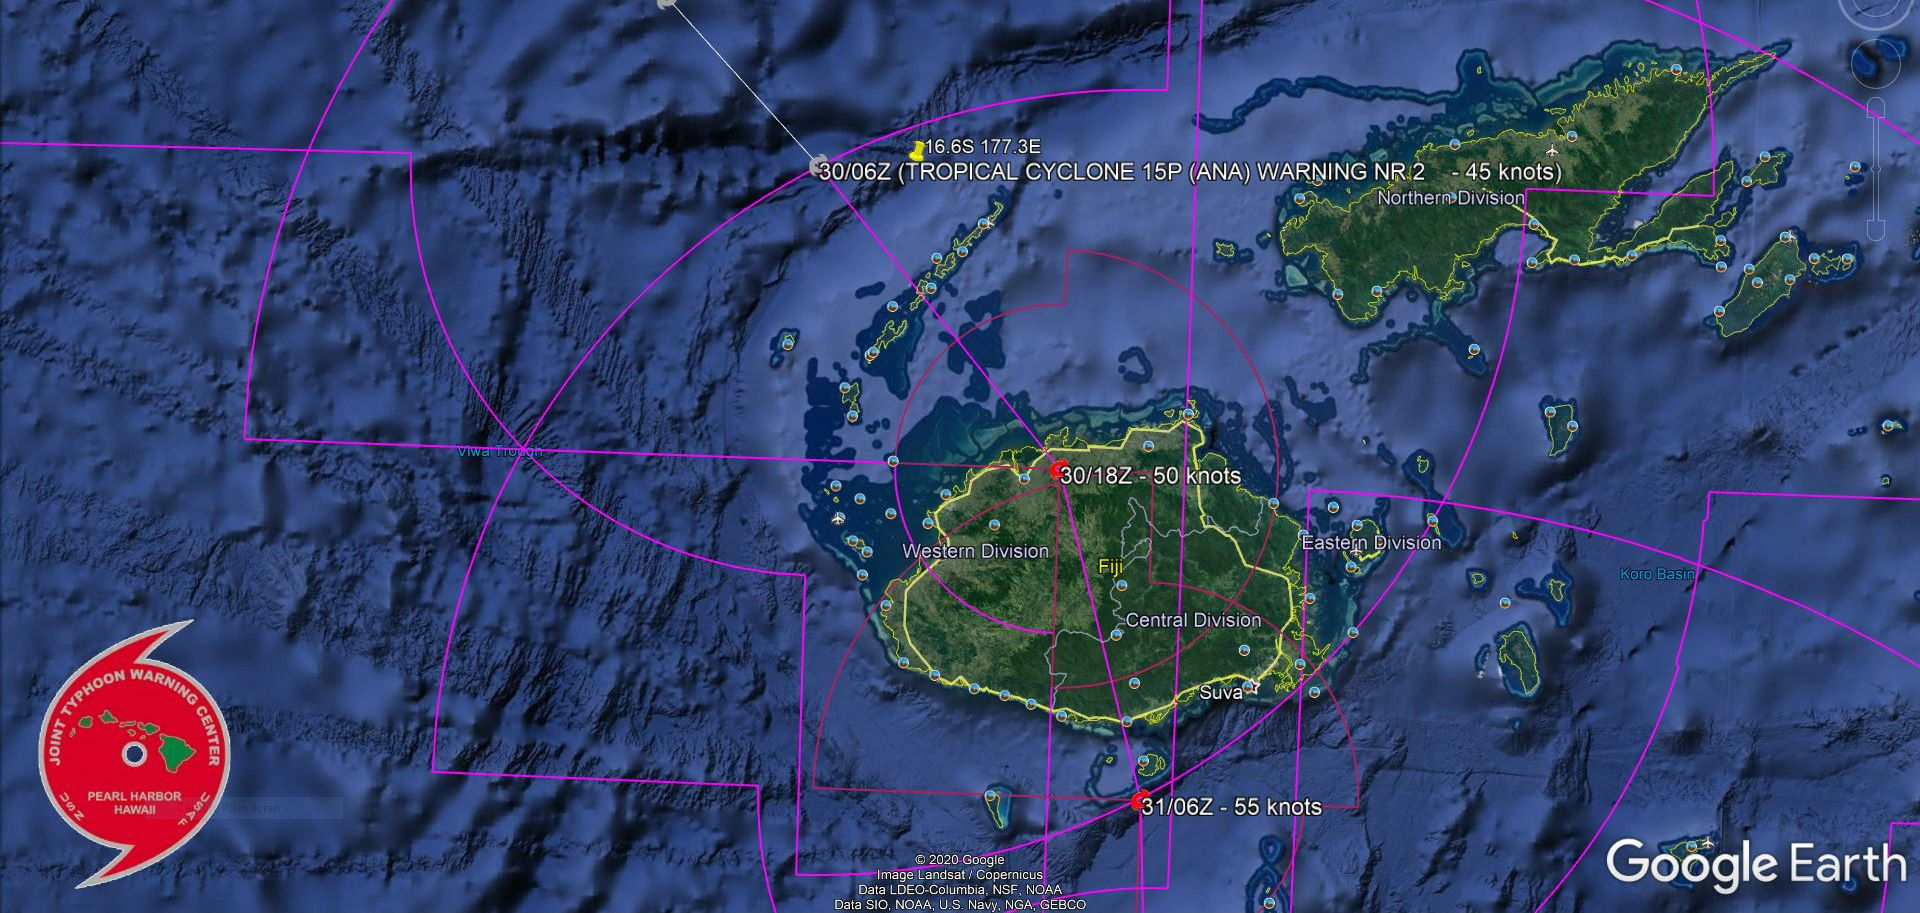 15P(ANA). FORECAST TO TRACK OVER VITI LEVU NEXT 24H WHILE INTENSIFYING. THE 30/09UTC SATELLITE POSITION IN INDICATED ON THE MAP.